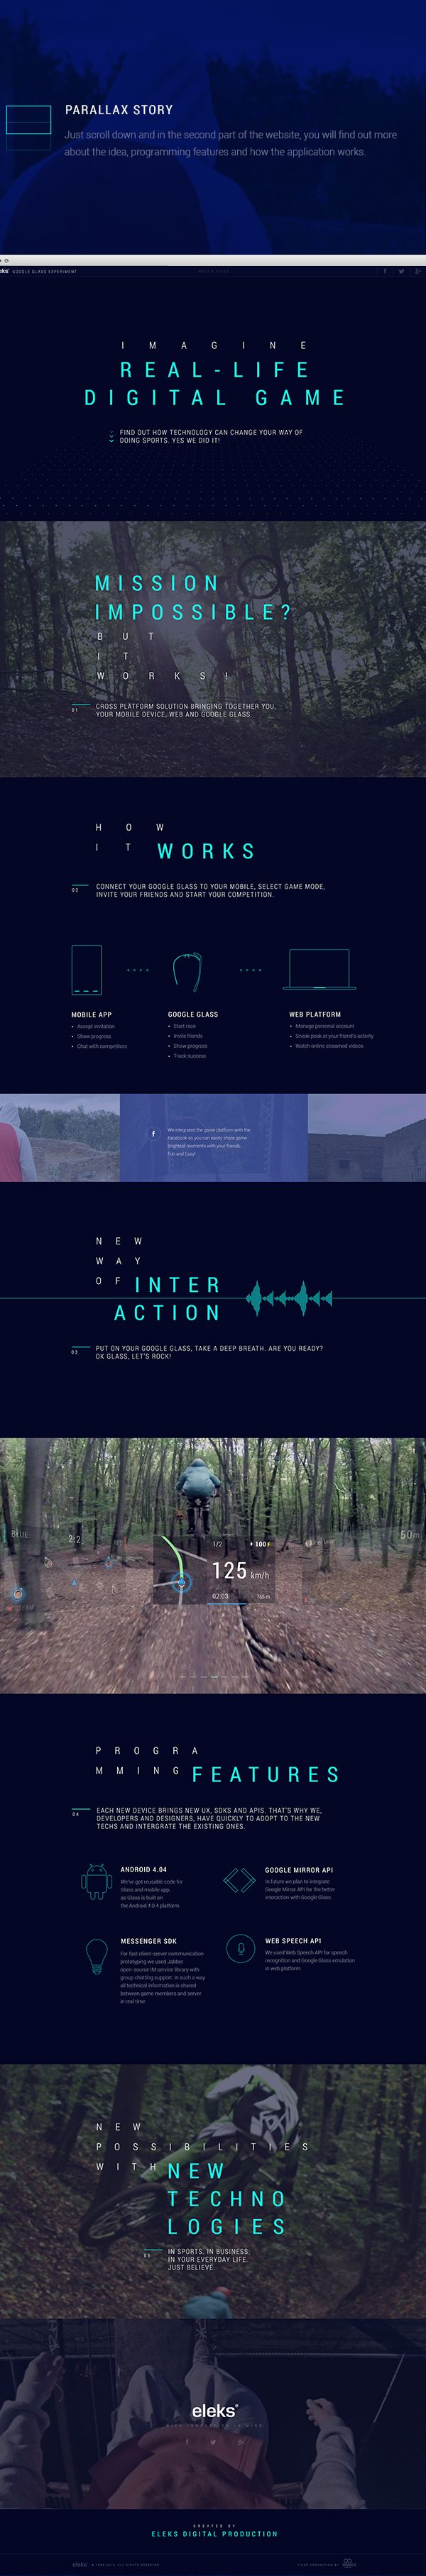 ELEKS Google Glass Experiment by Oleg Gasioshyn, via Behance